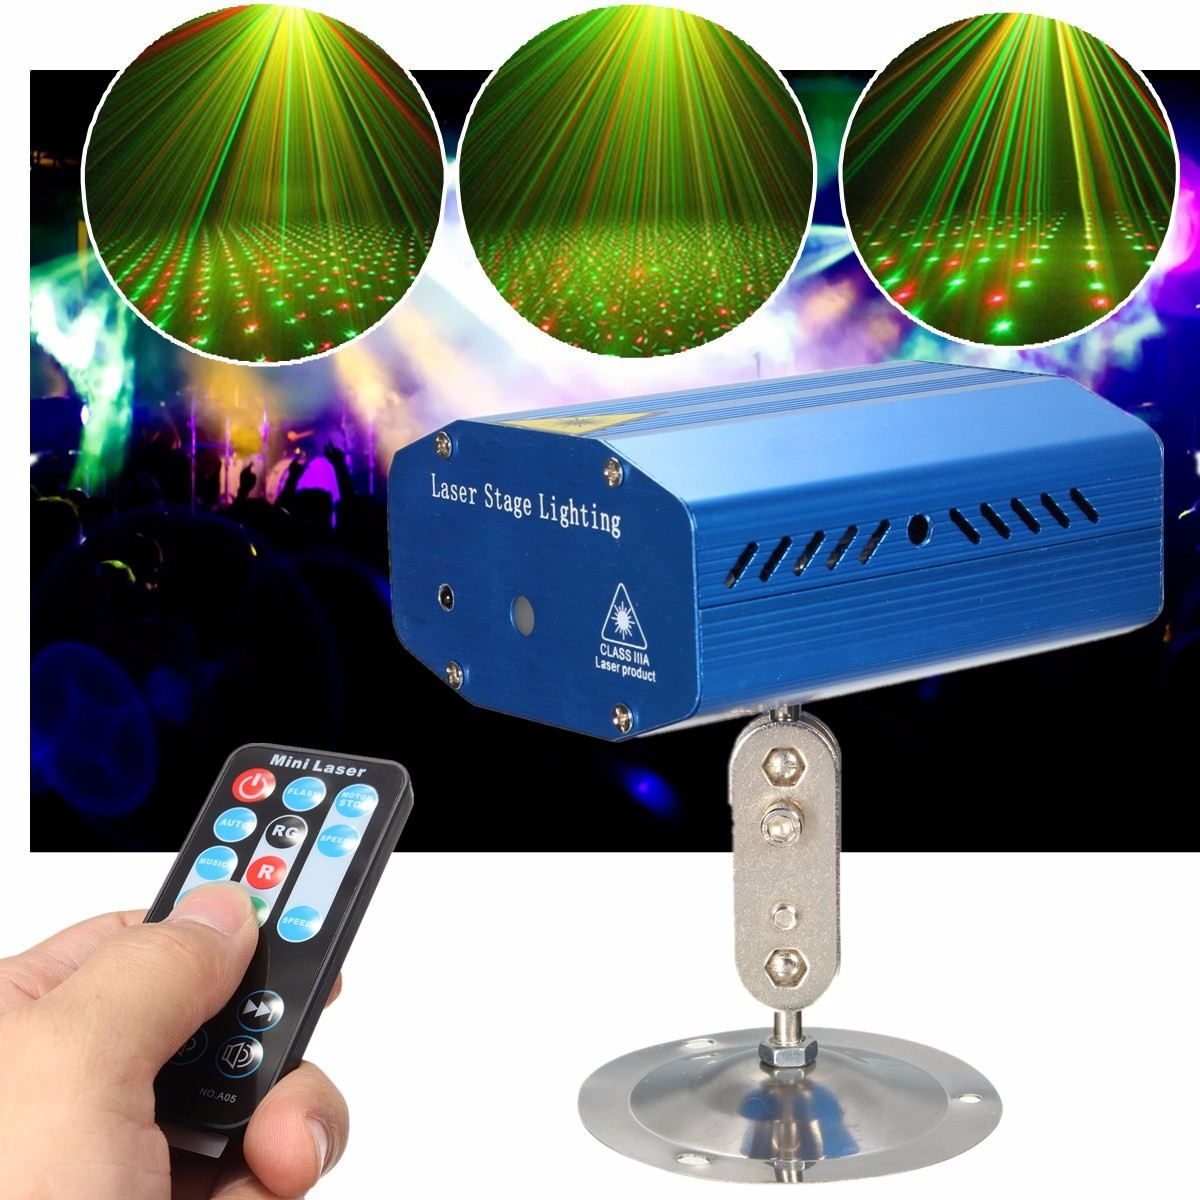 Star Laser Projector Sound Remote Control Stage Light LED Night Lamp Holder Club Pub Bar Disco Wedding Party Show Lighting